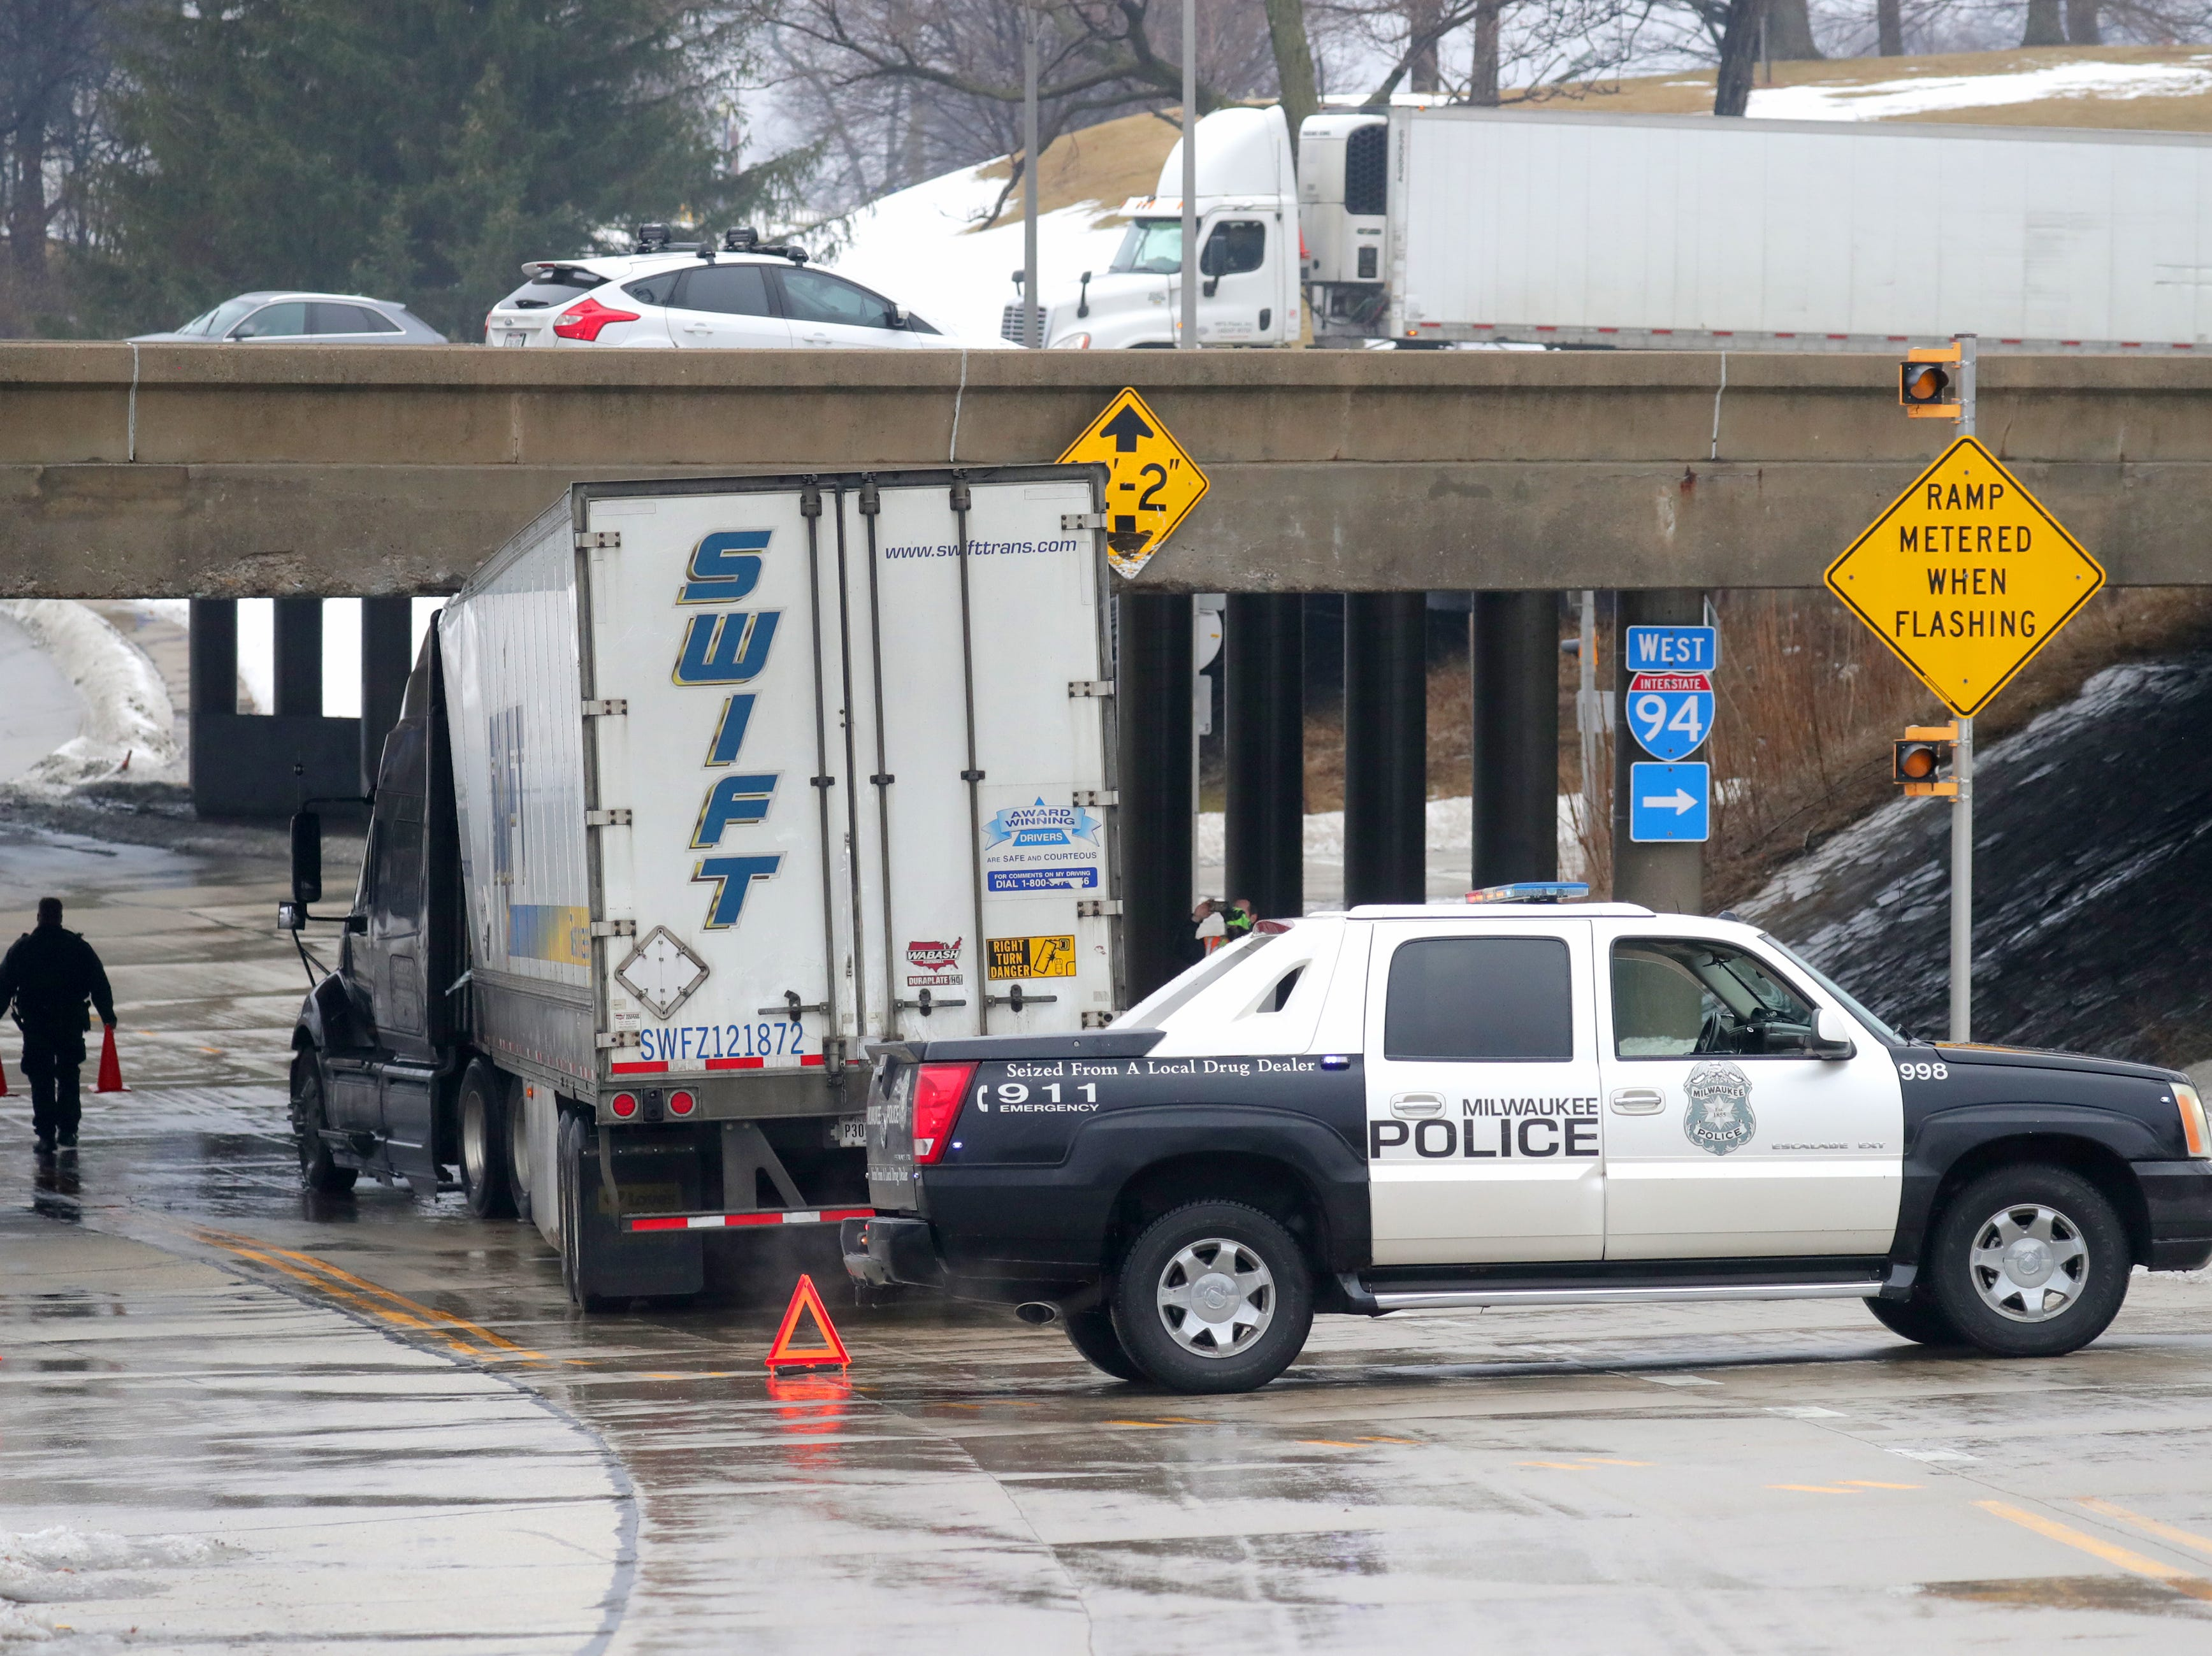 Milwaukee Police place cones around the site where the semi truck is stuck.